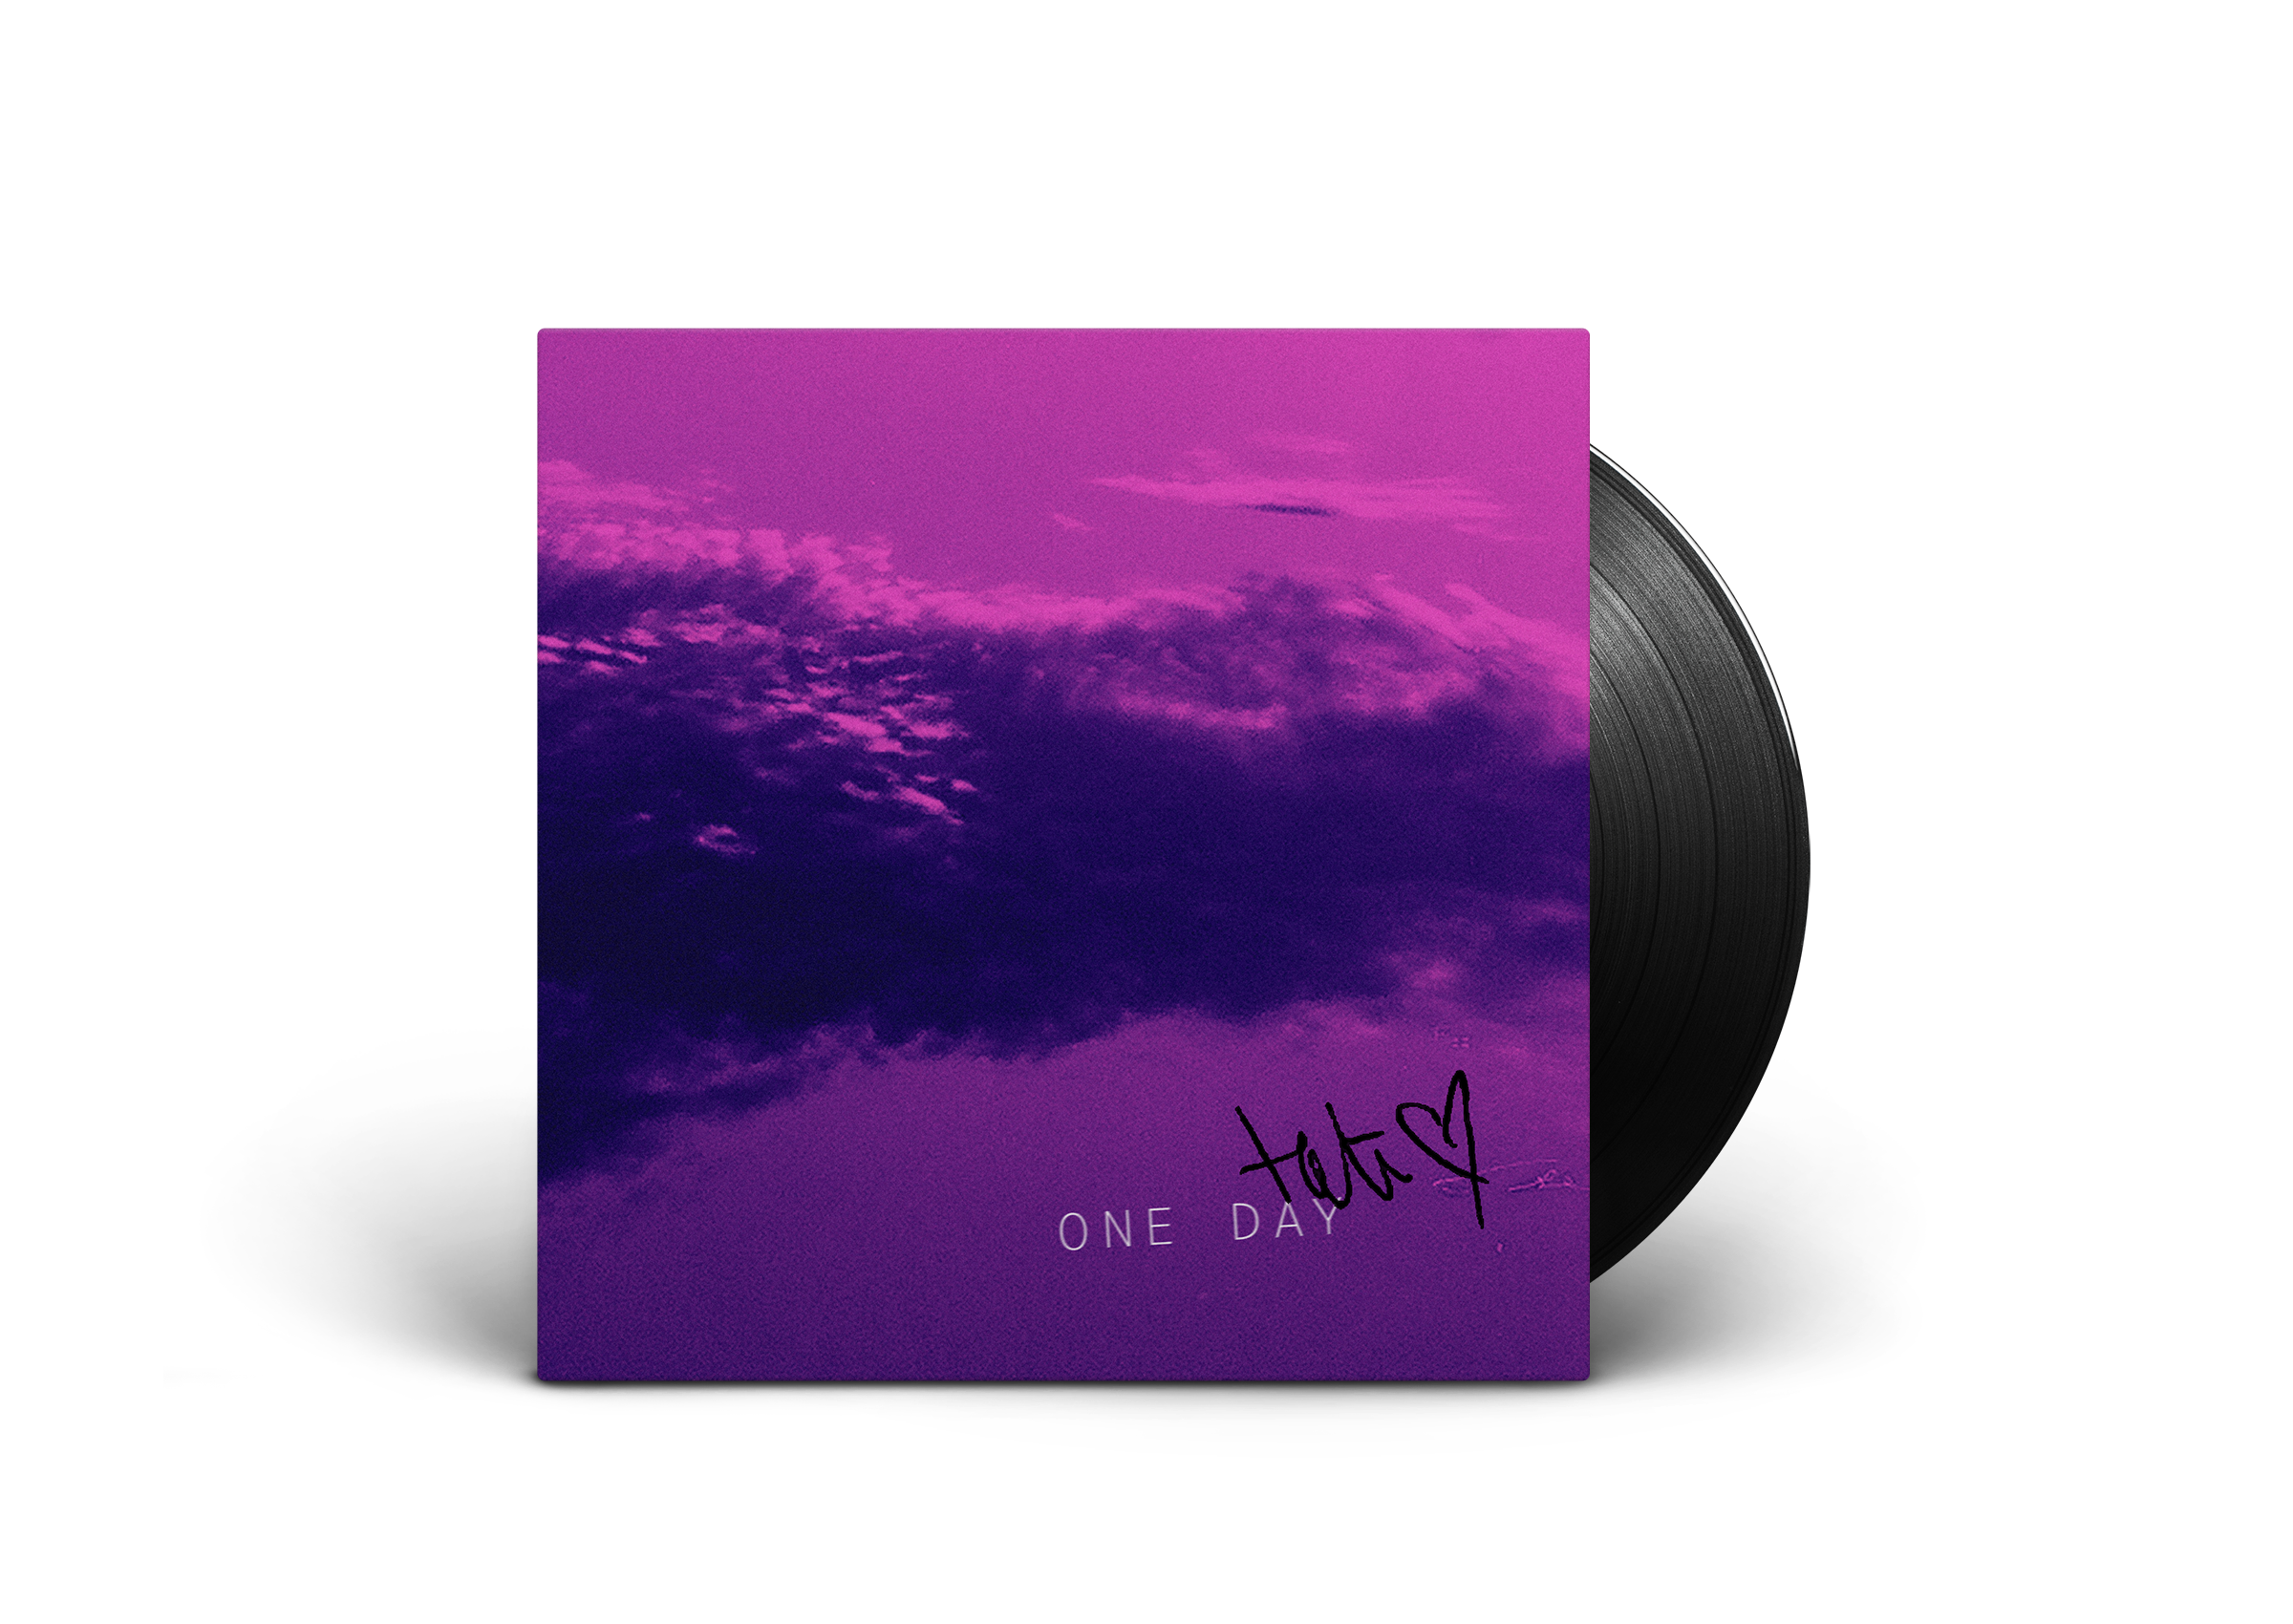 One Day - 7